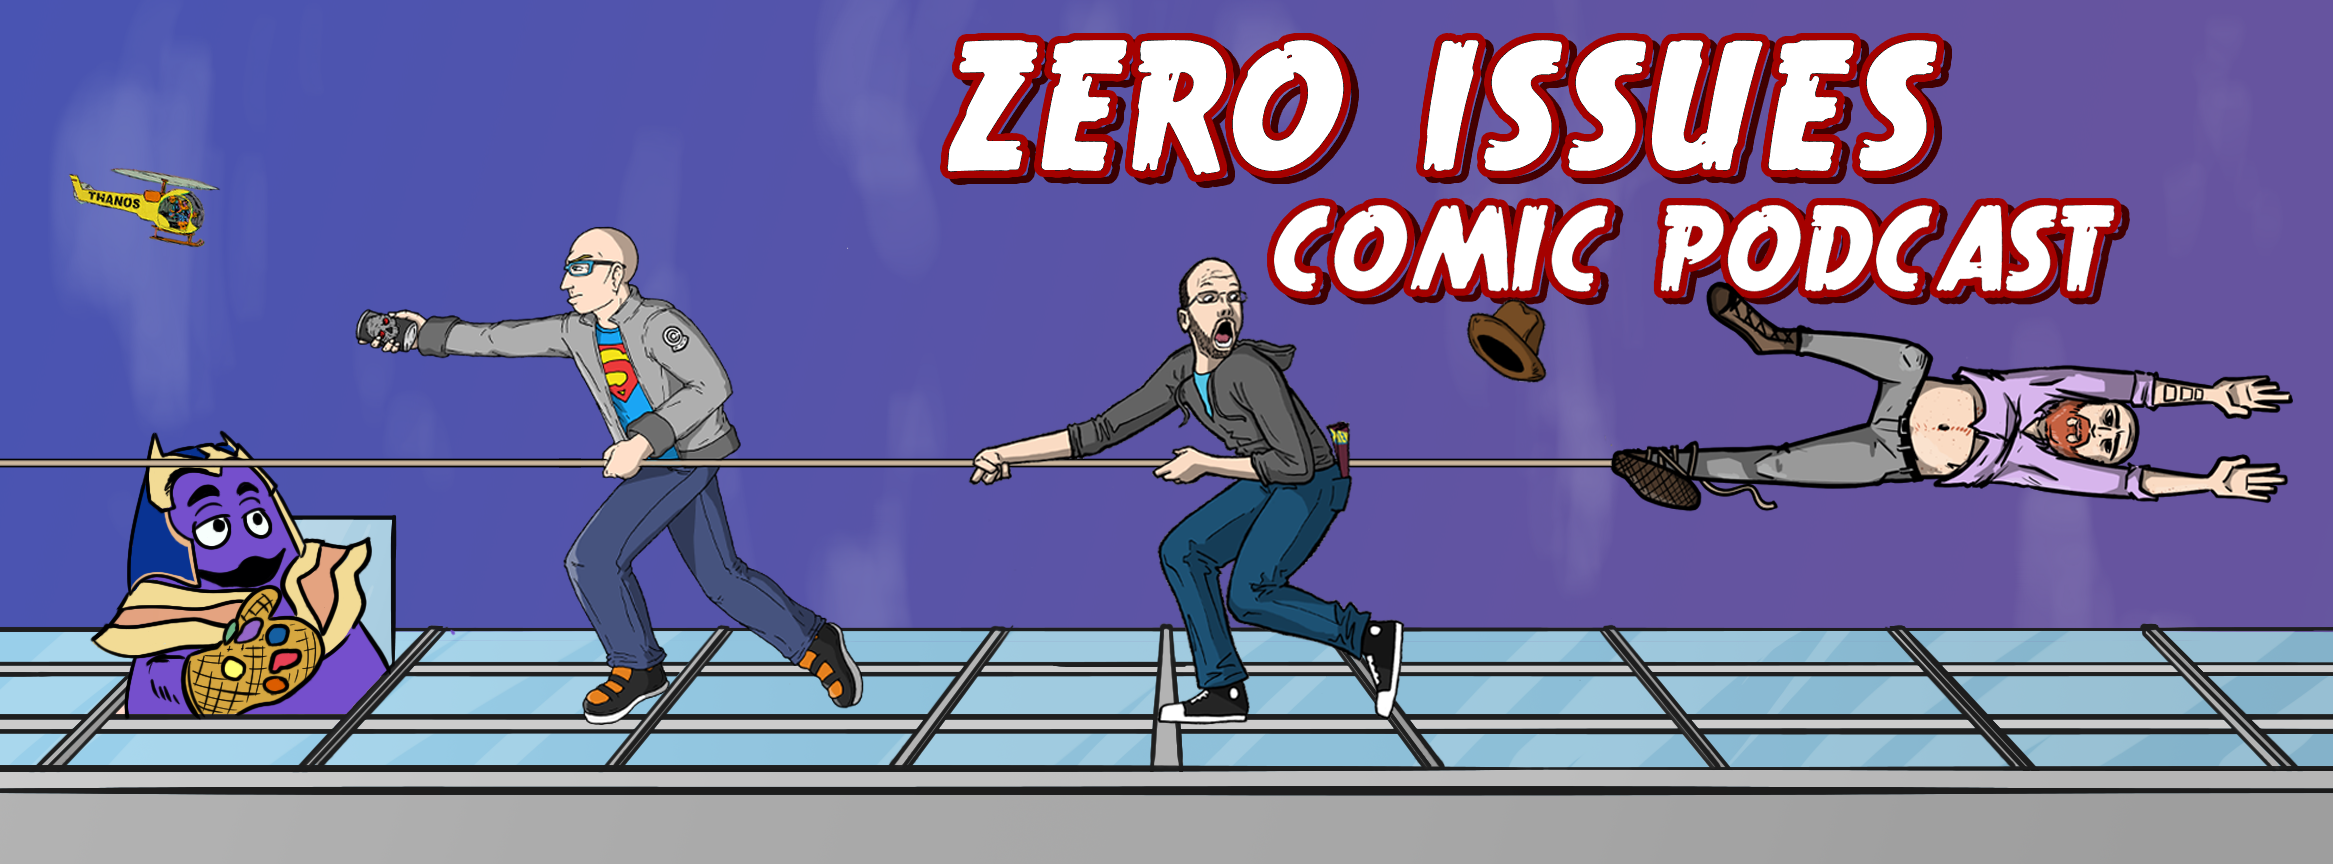 Zero Issues Comic Podcast